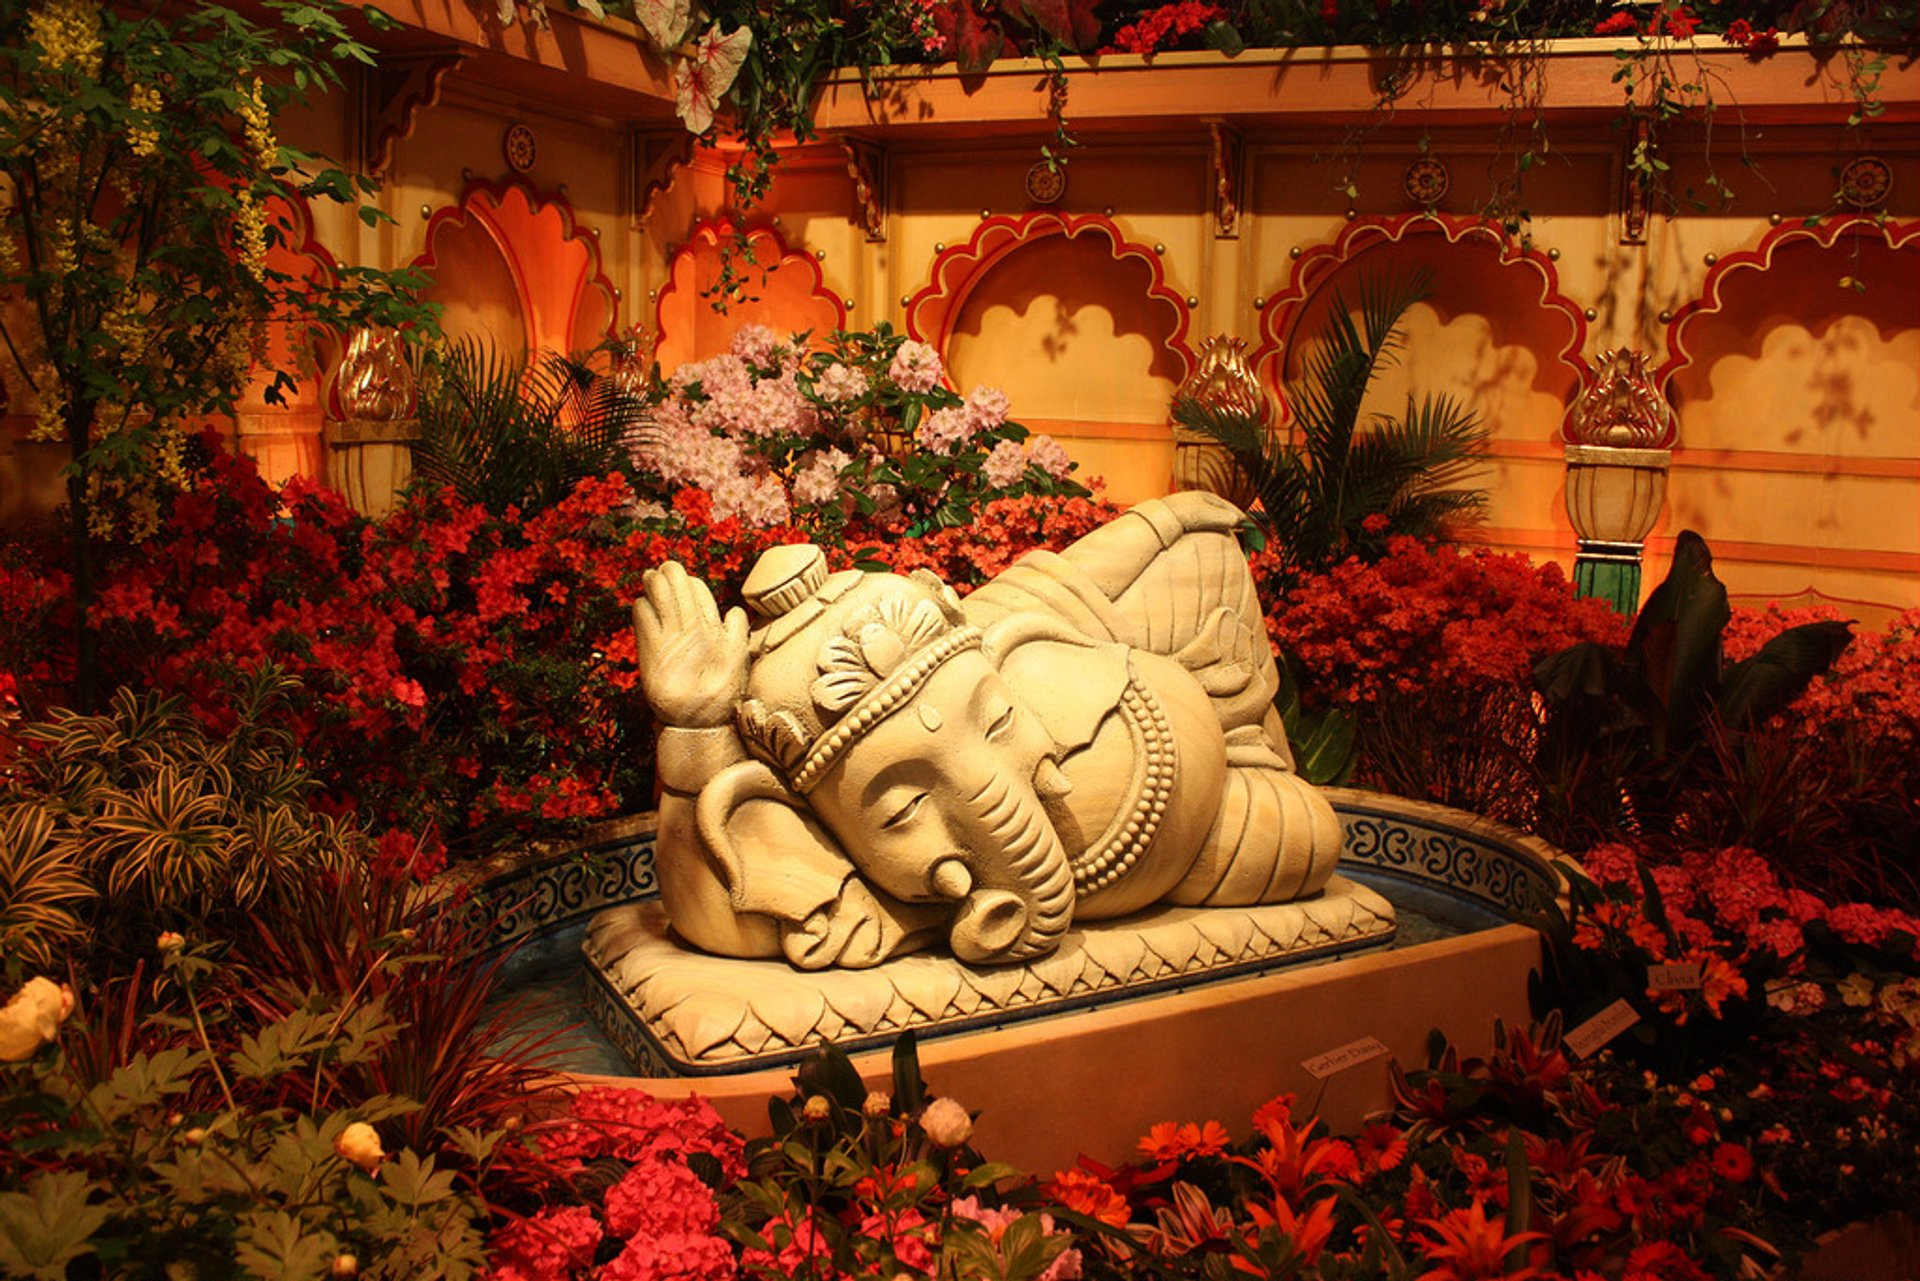 Best time for Macy's Flower Show in New York 2019